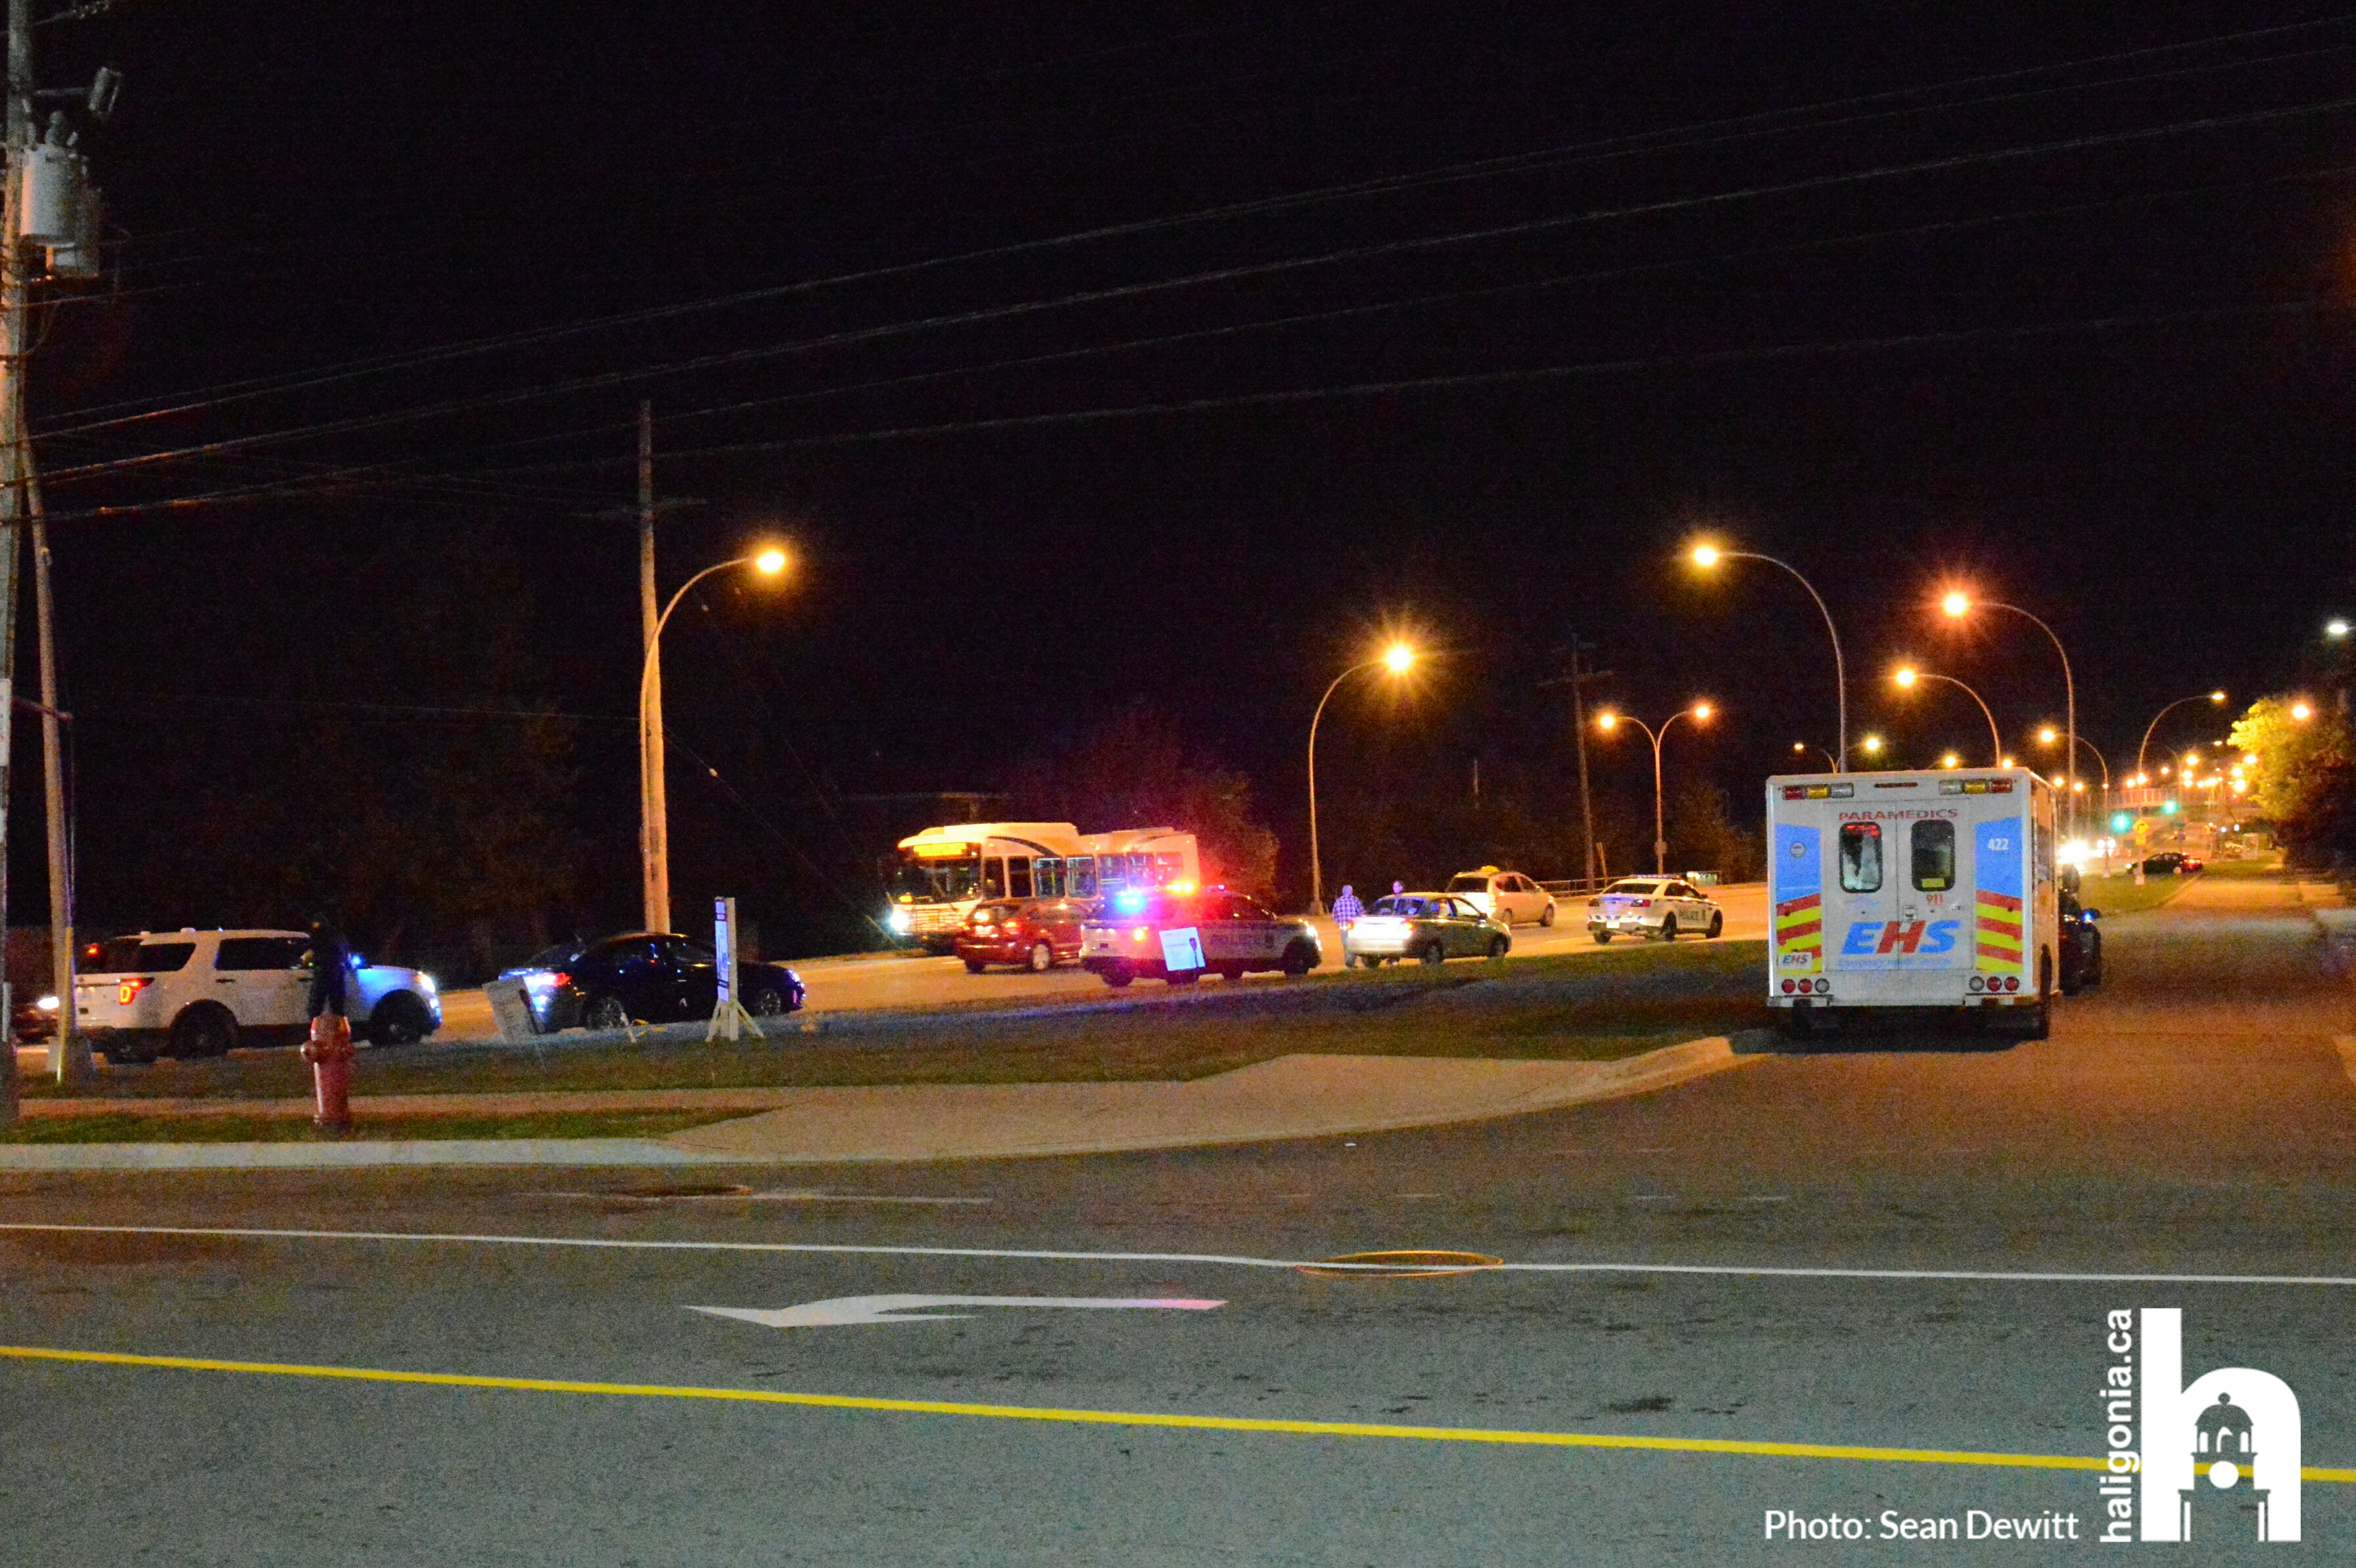 Minor Injuries After Car Pedestrian Accident In